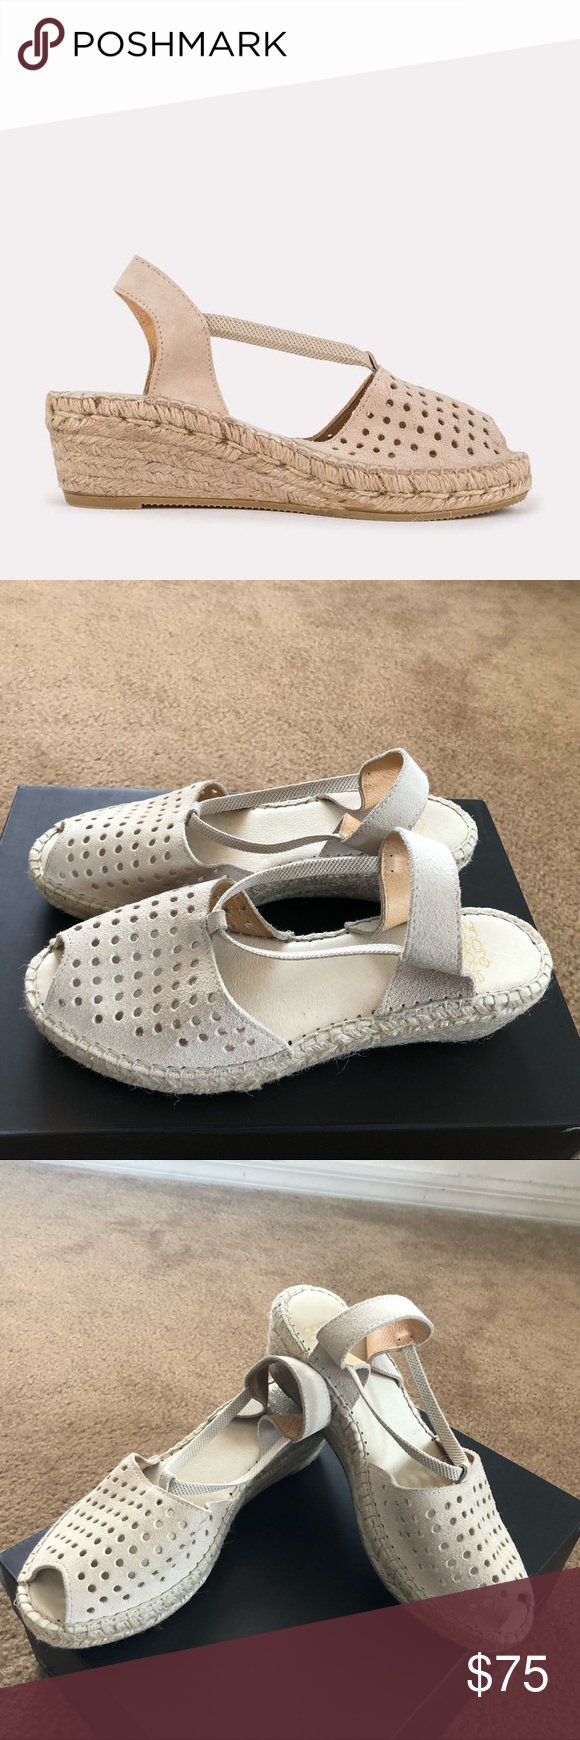 1e248871c New  Andre Assous  Corrine suede espadrille sandal NWT in 2018